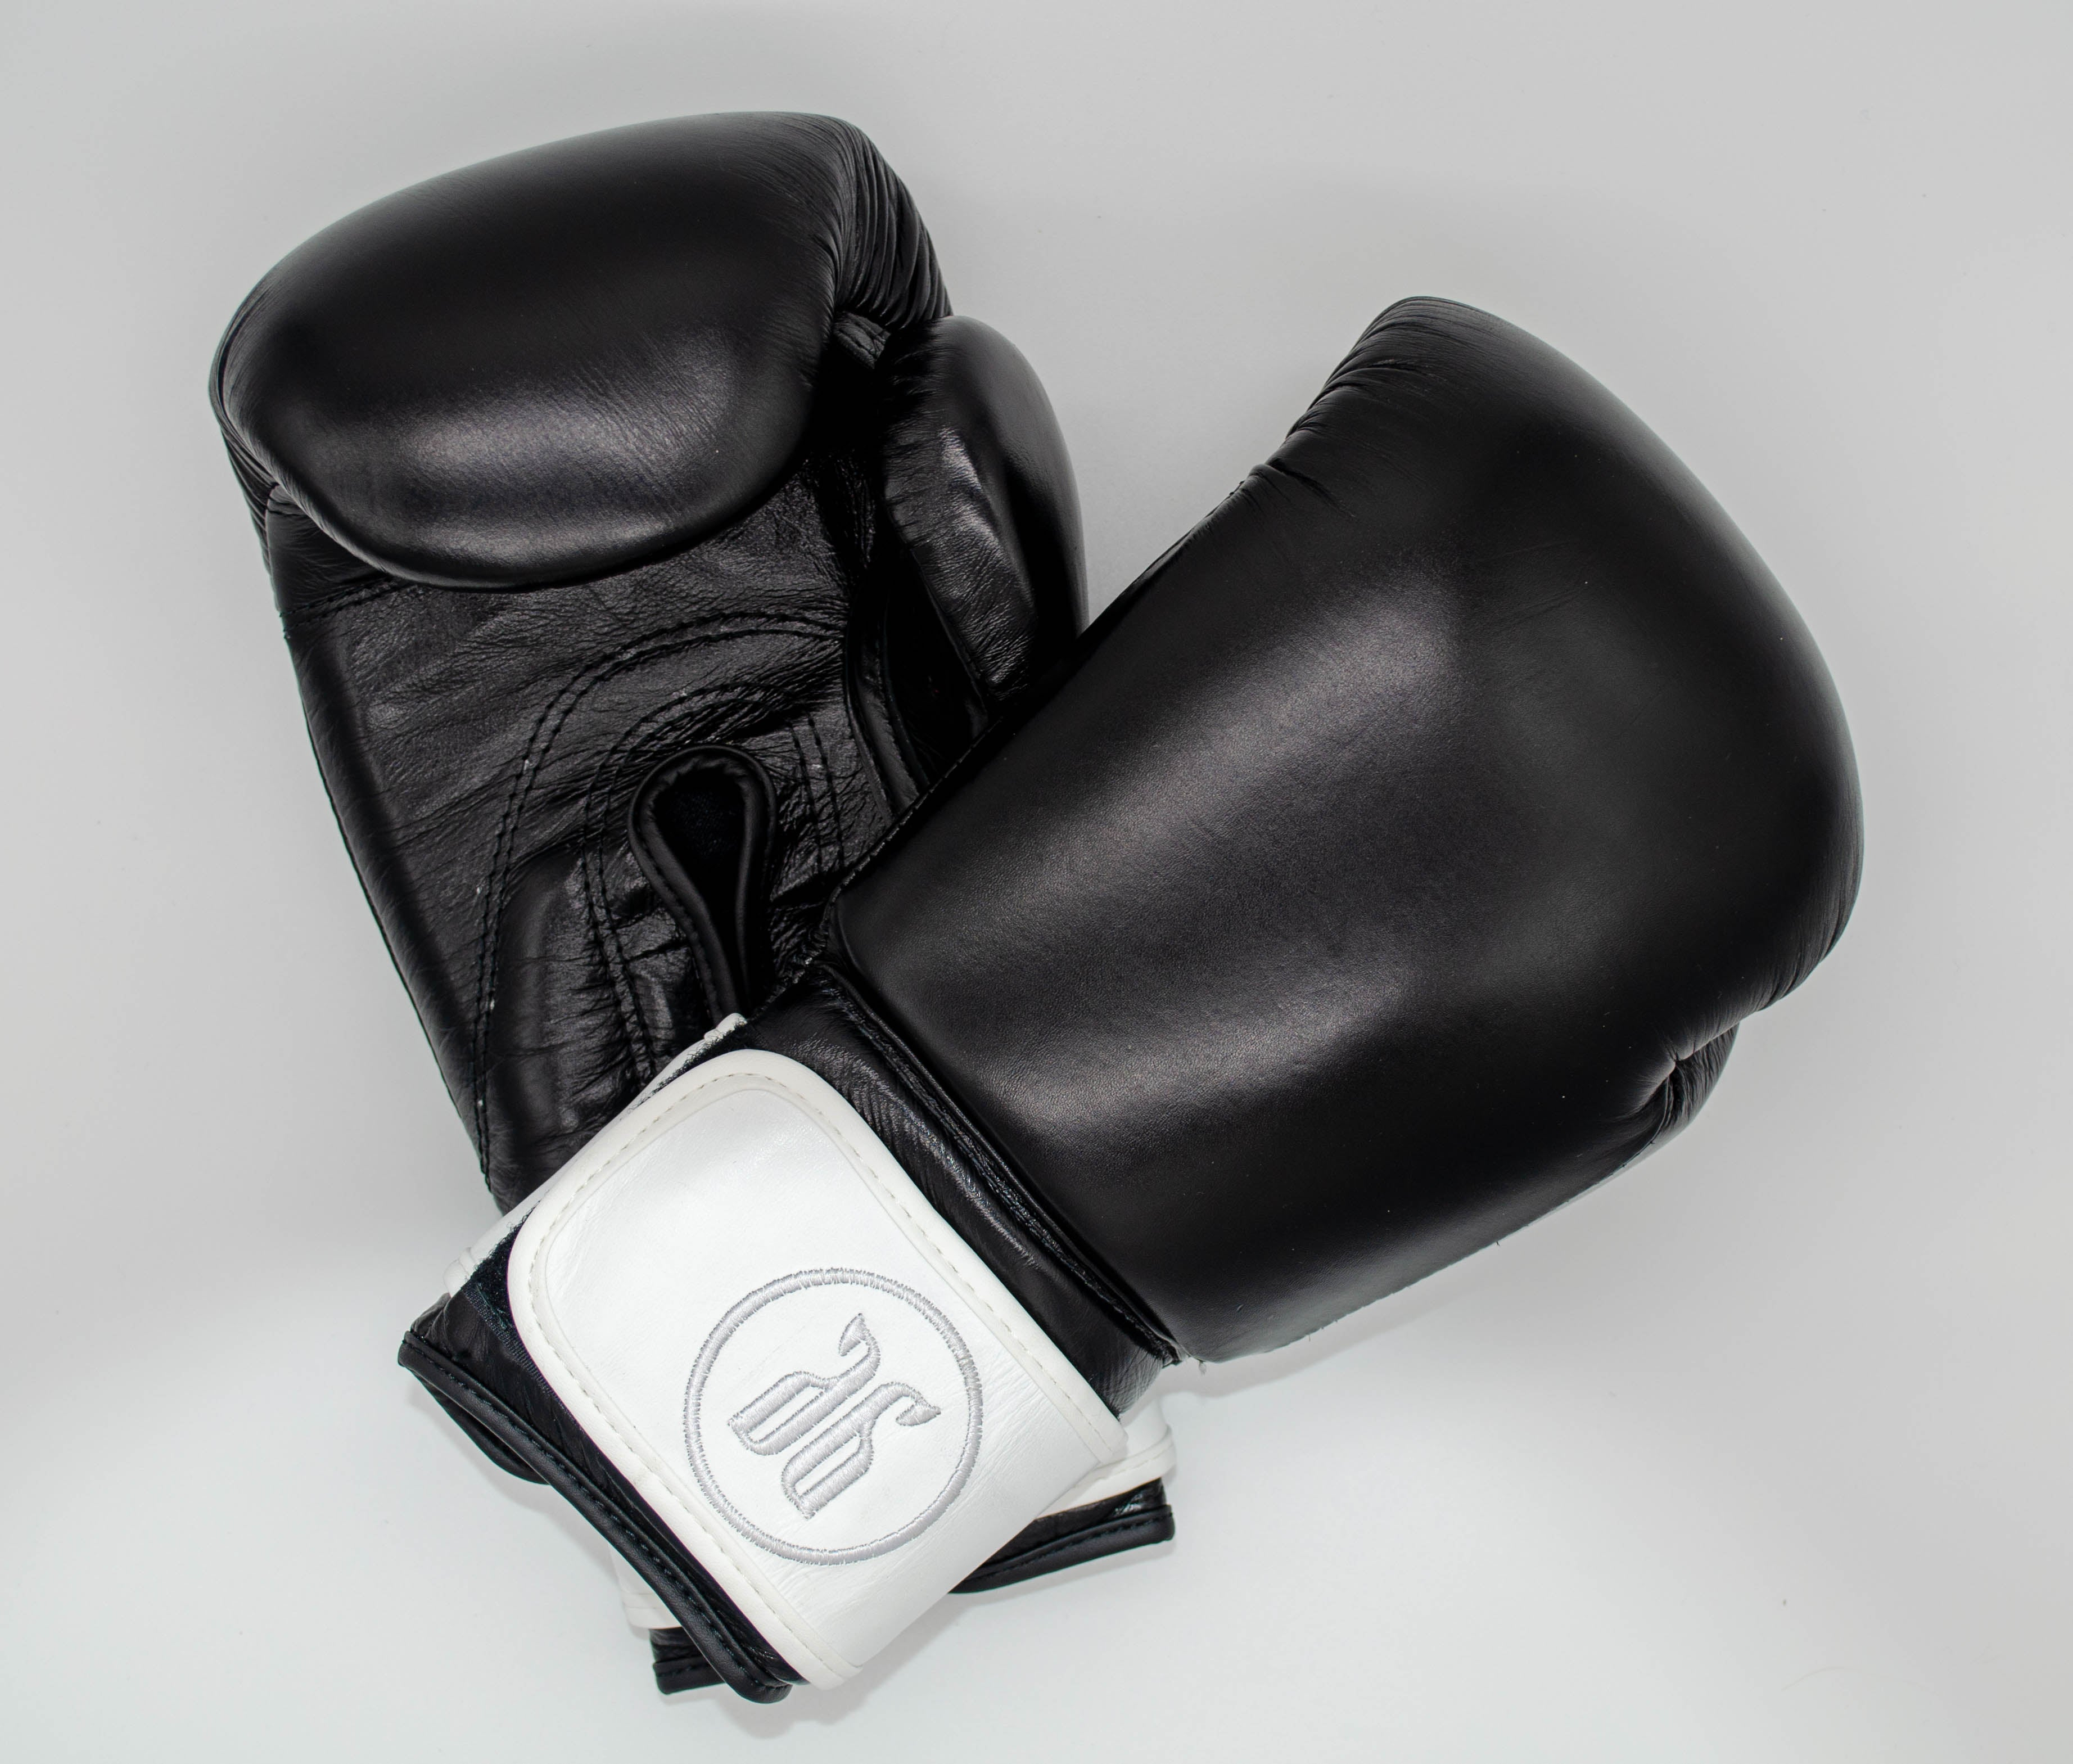 black and white boxing gloves